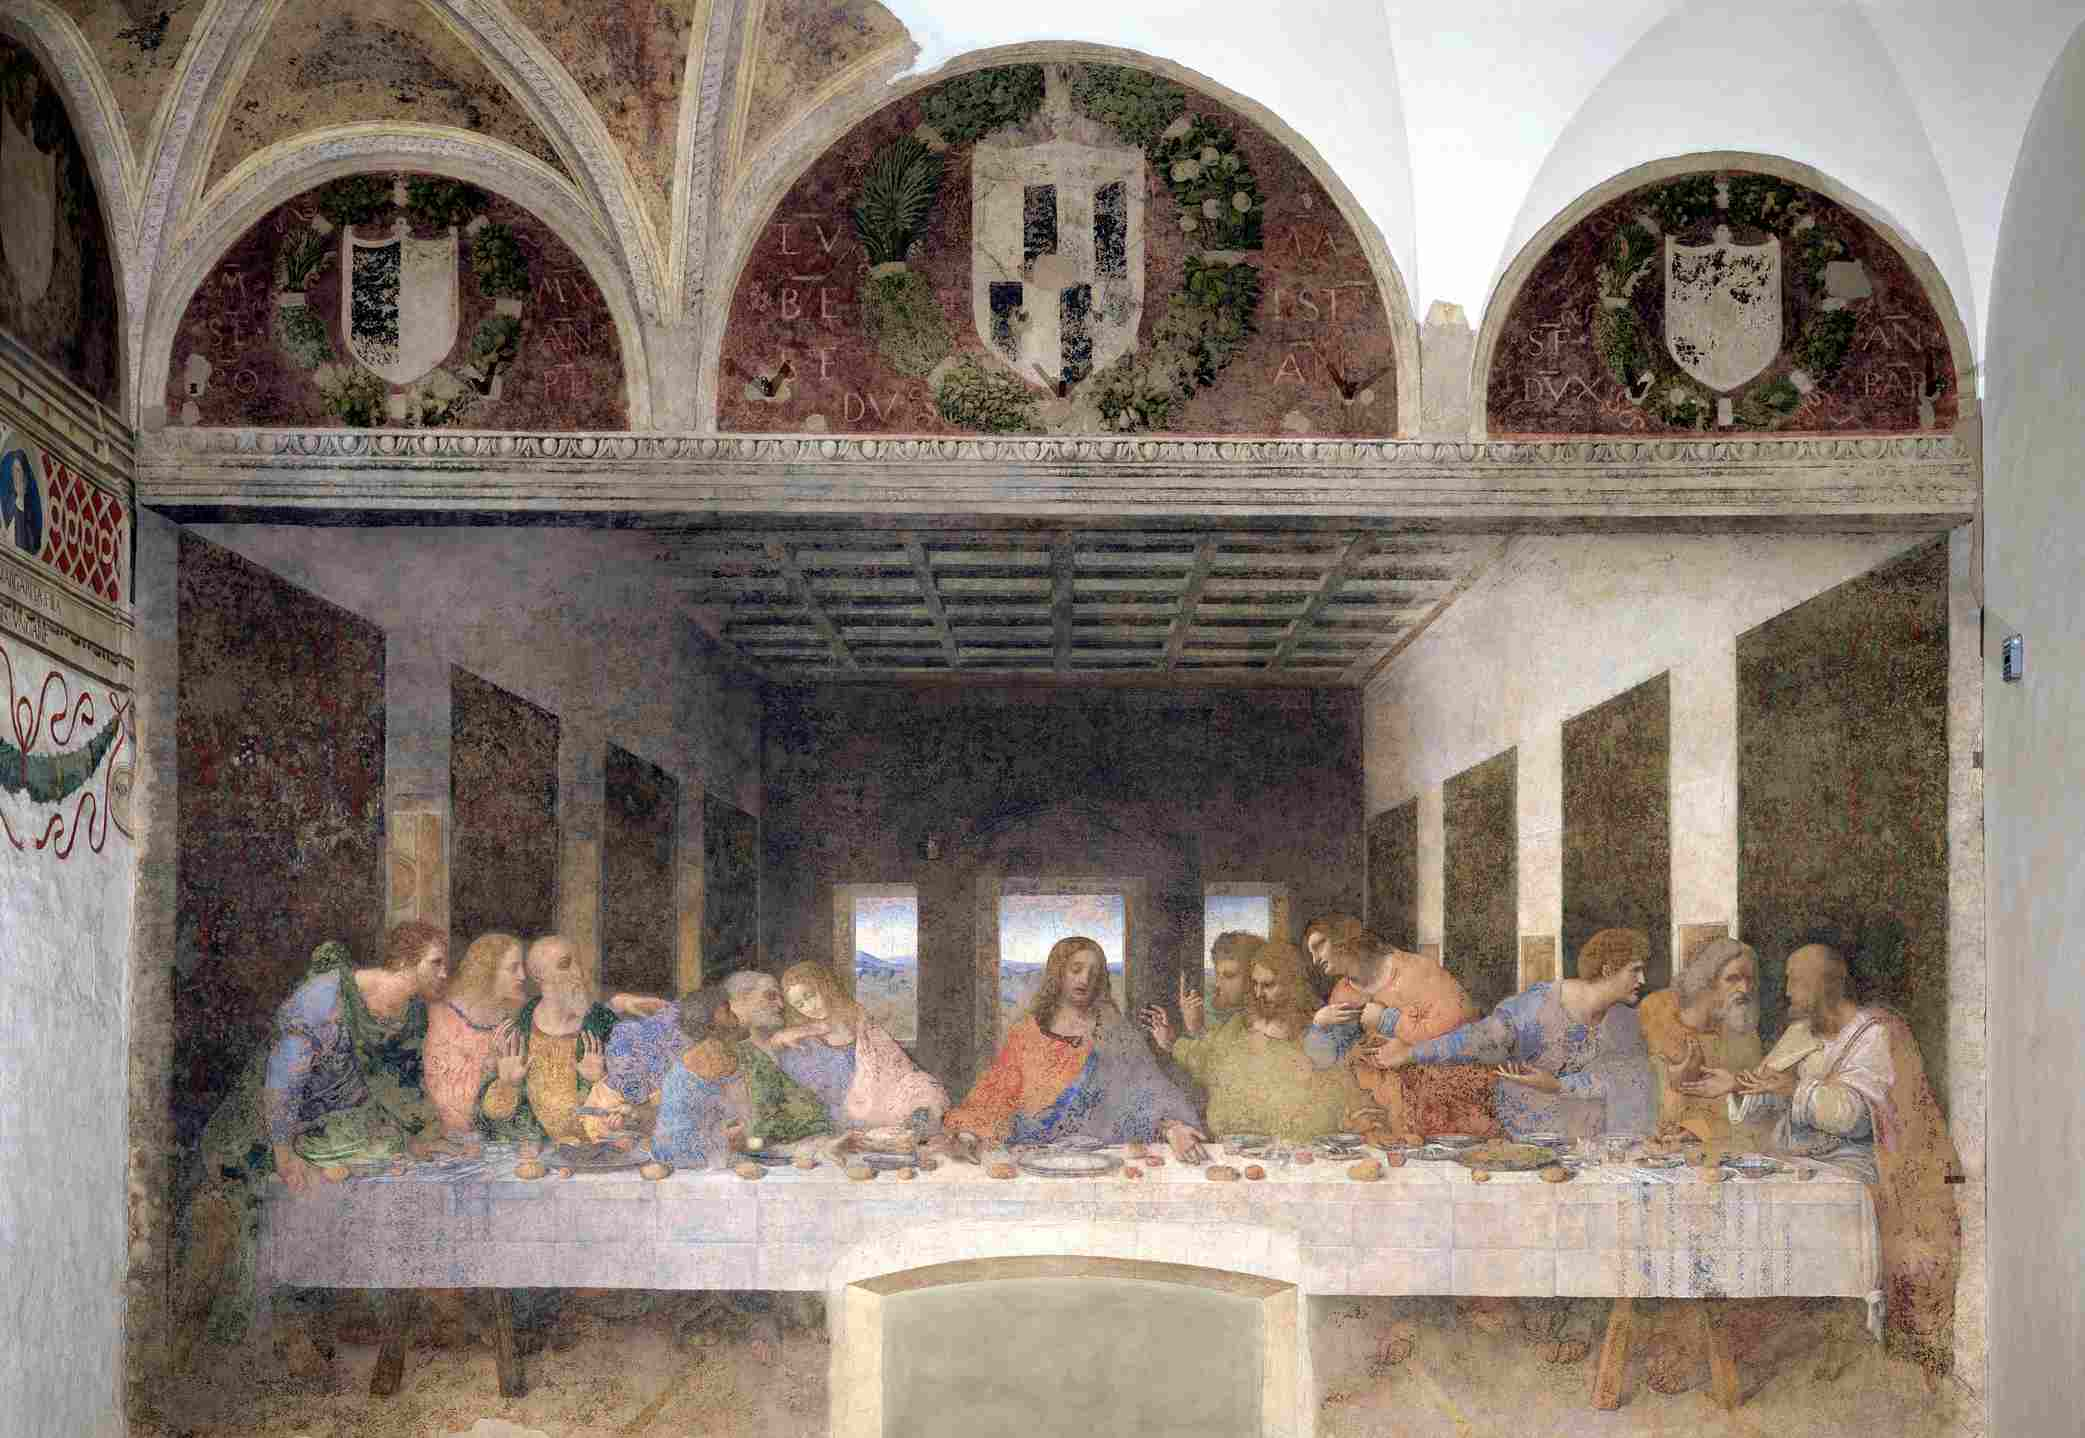 The Last Supper in Florence painting